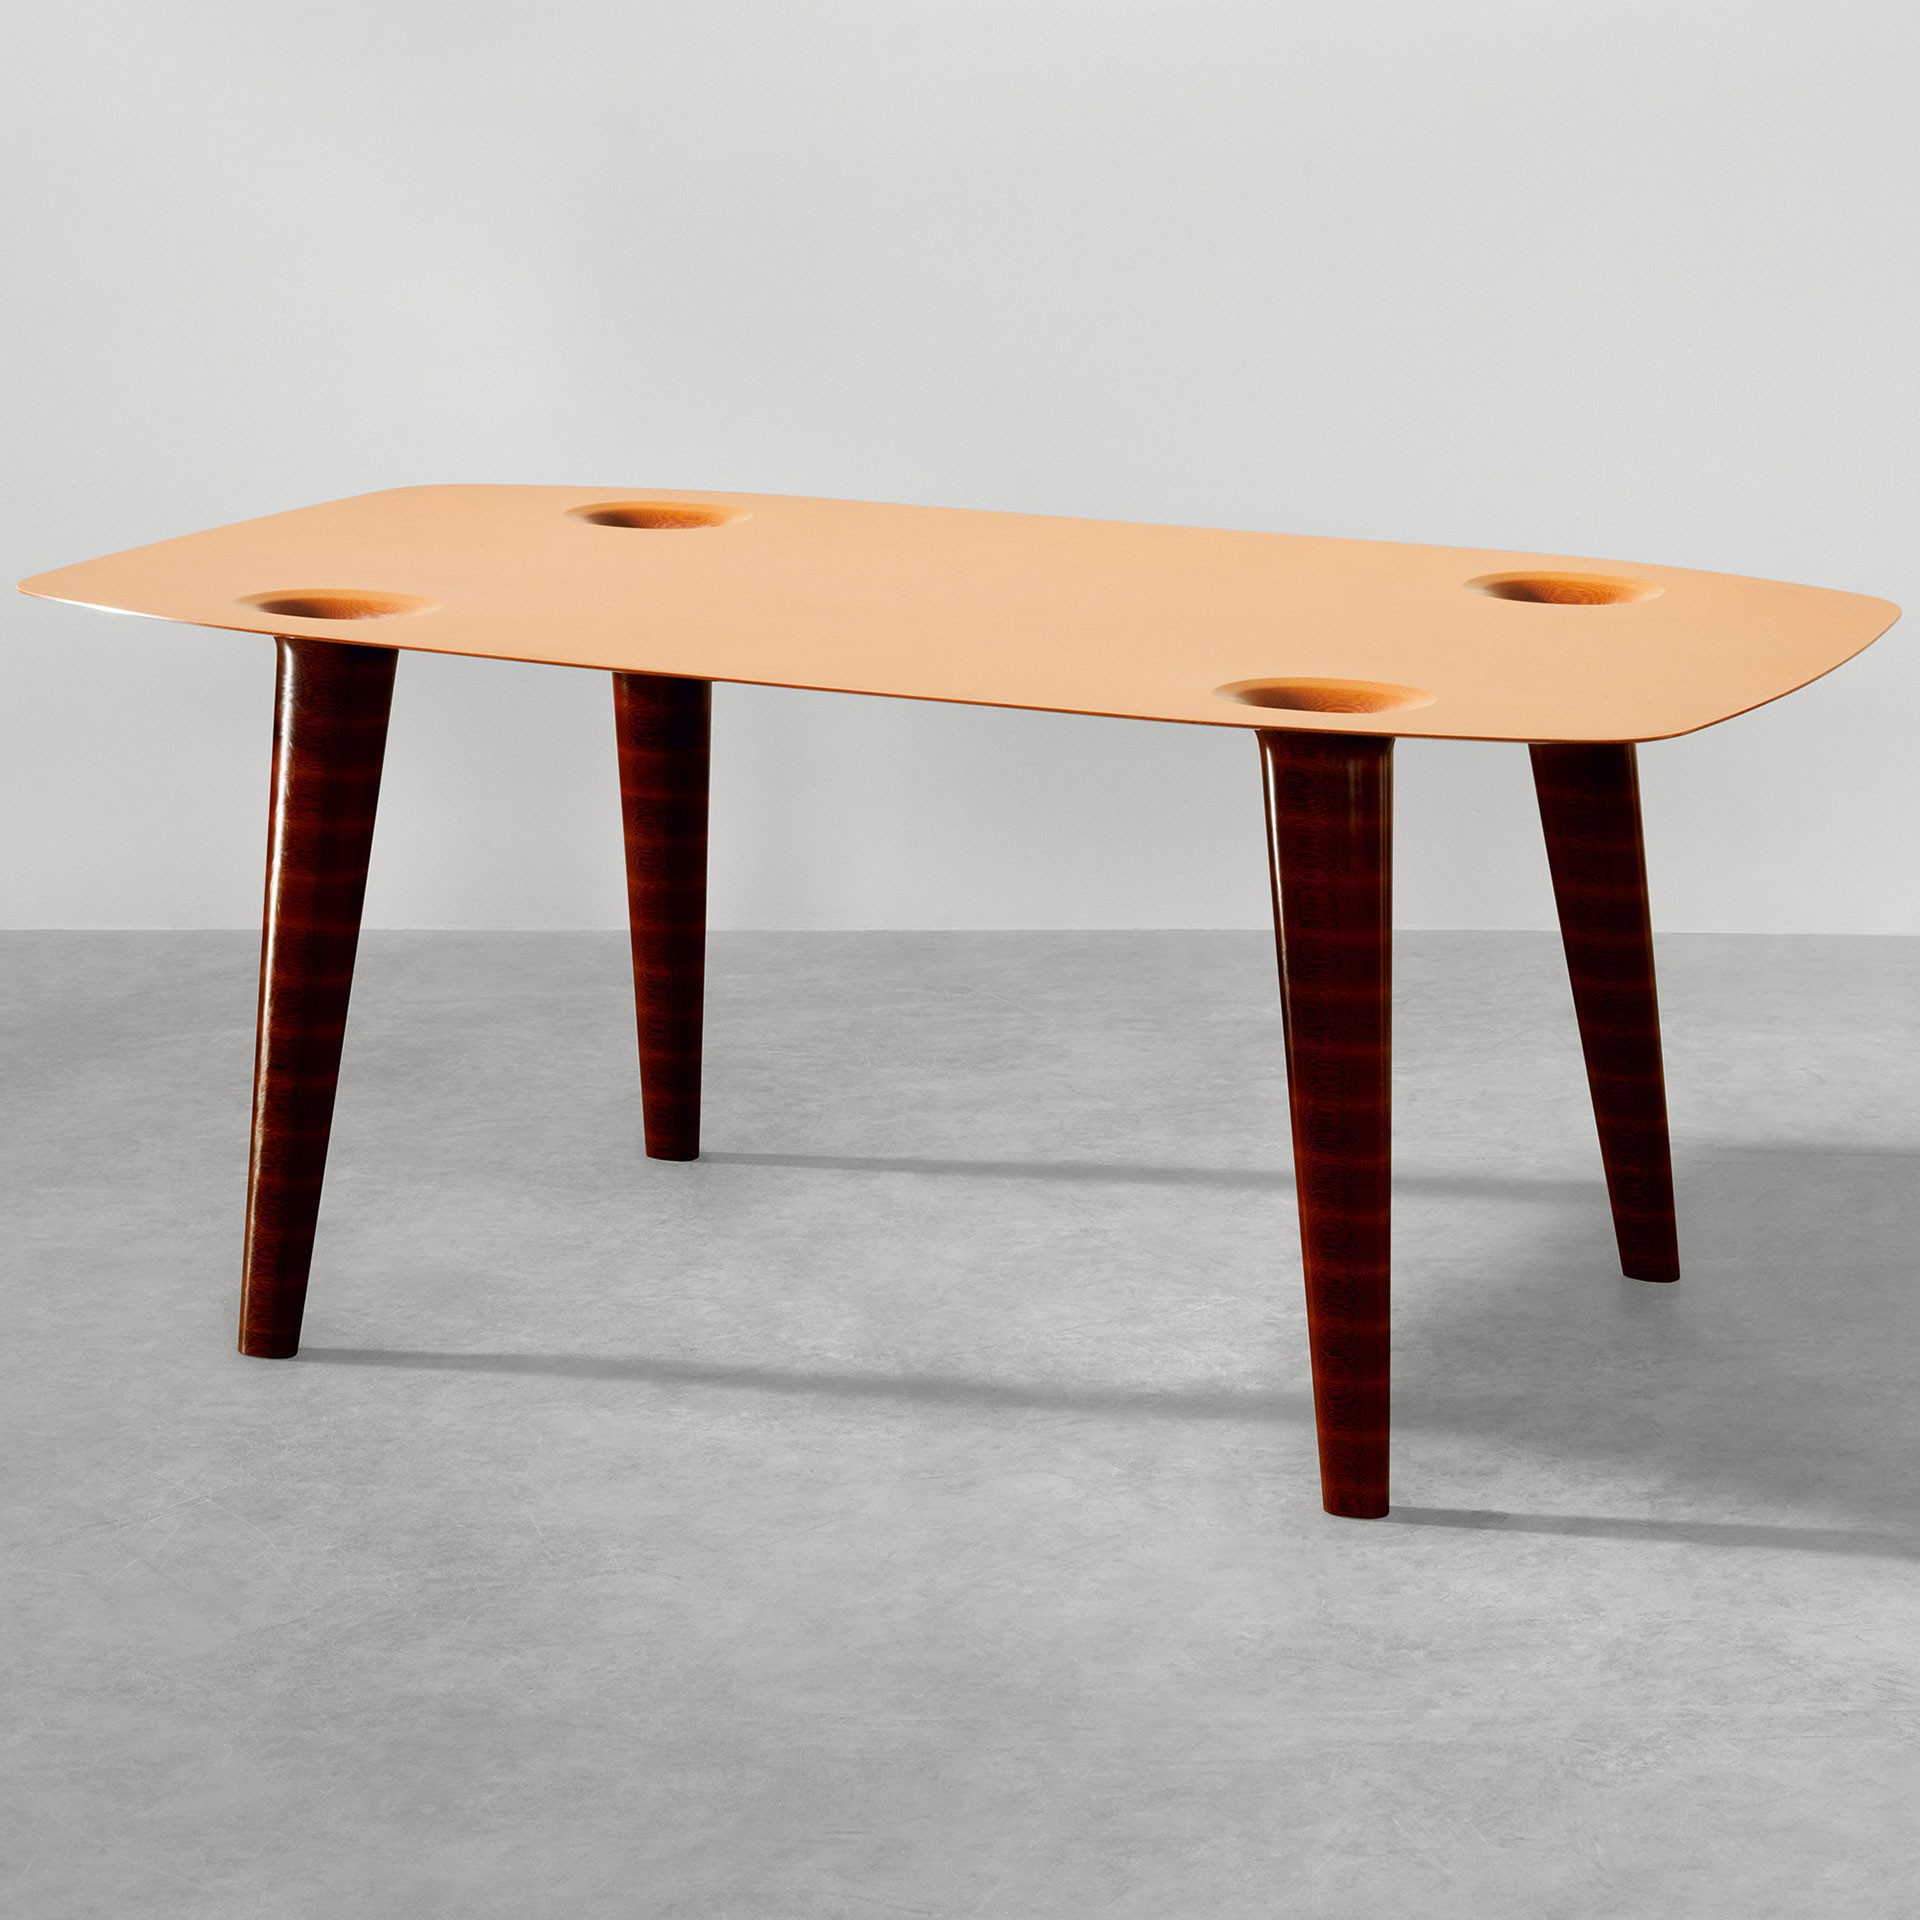 Marc newson desk best home design 2018 for Design table new york